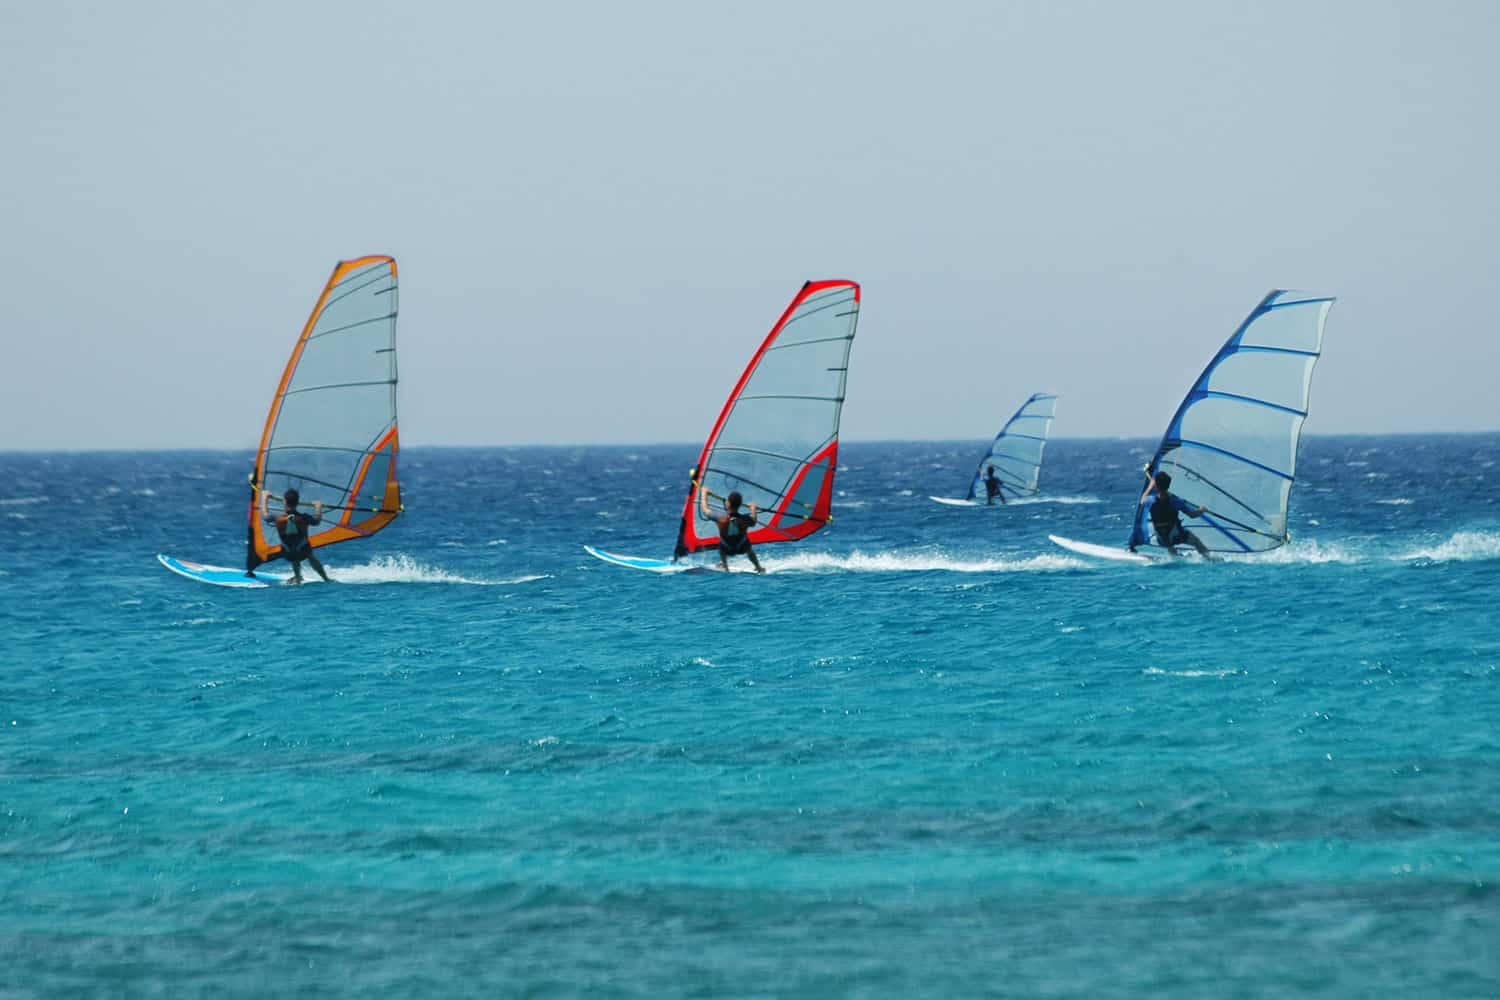 Four windsurfers riding their windsurfing boards out in the ocean